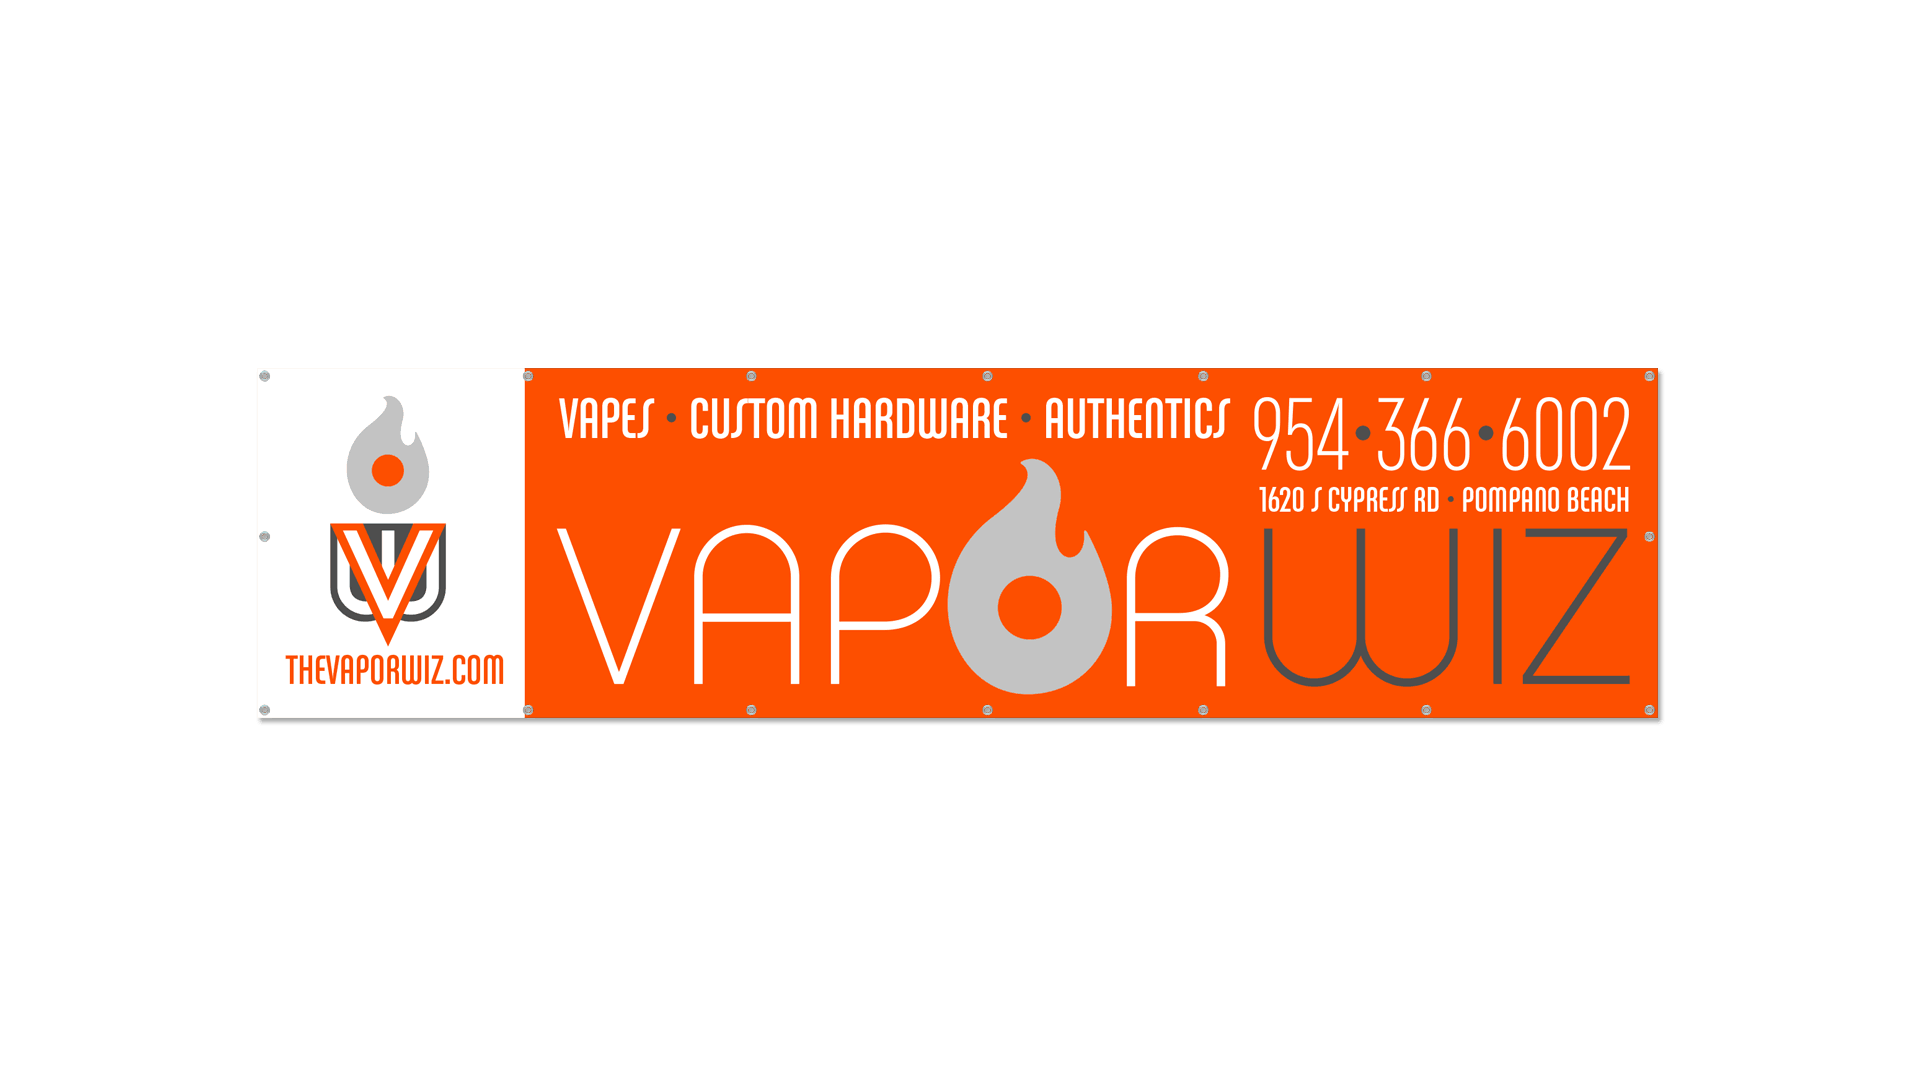 BRIAN HILL DESIGN: Vapor Wiz